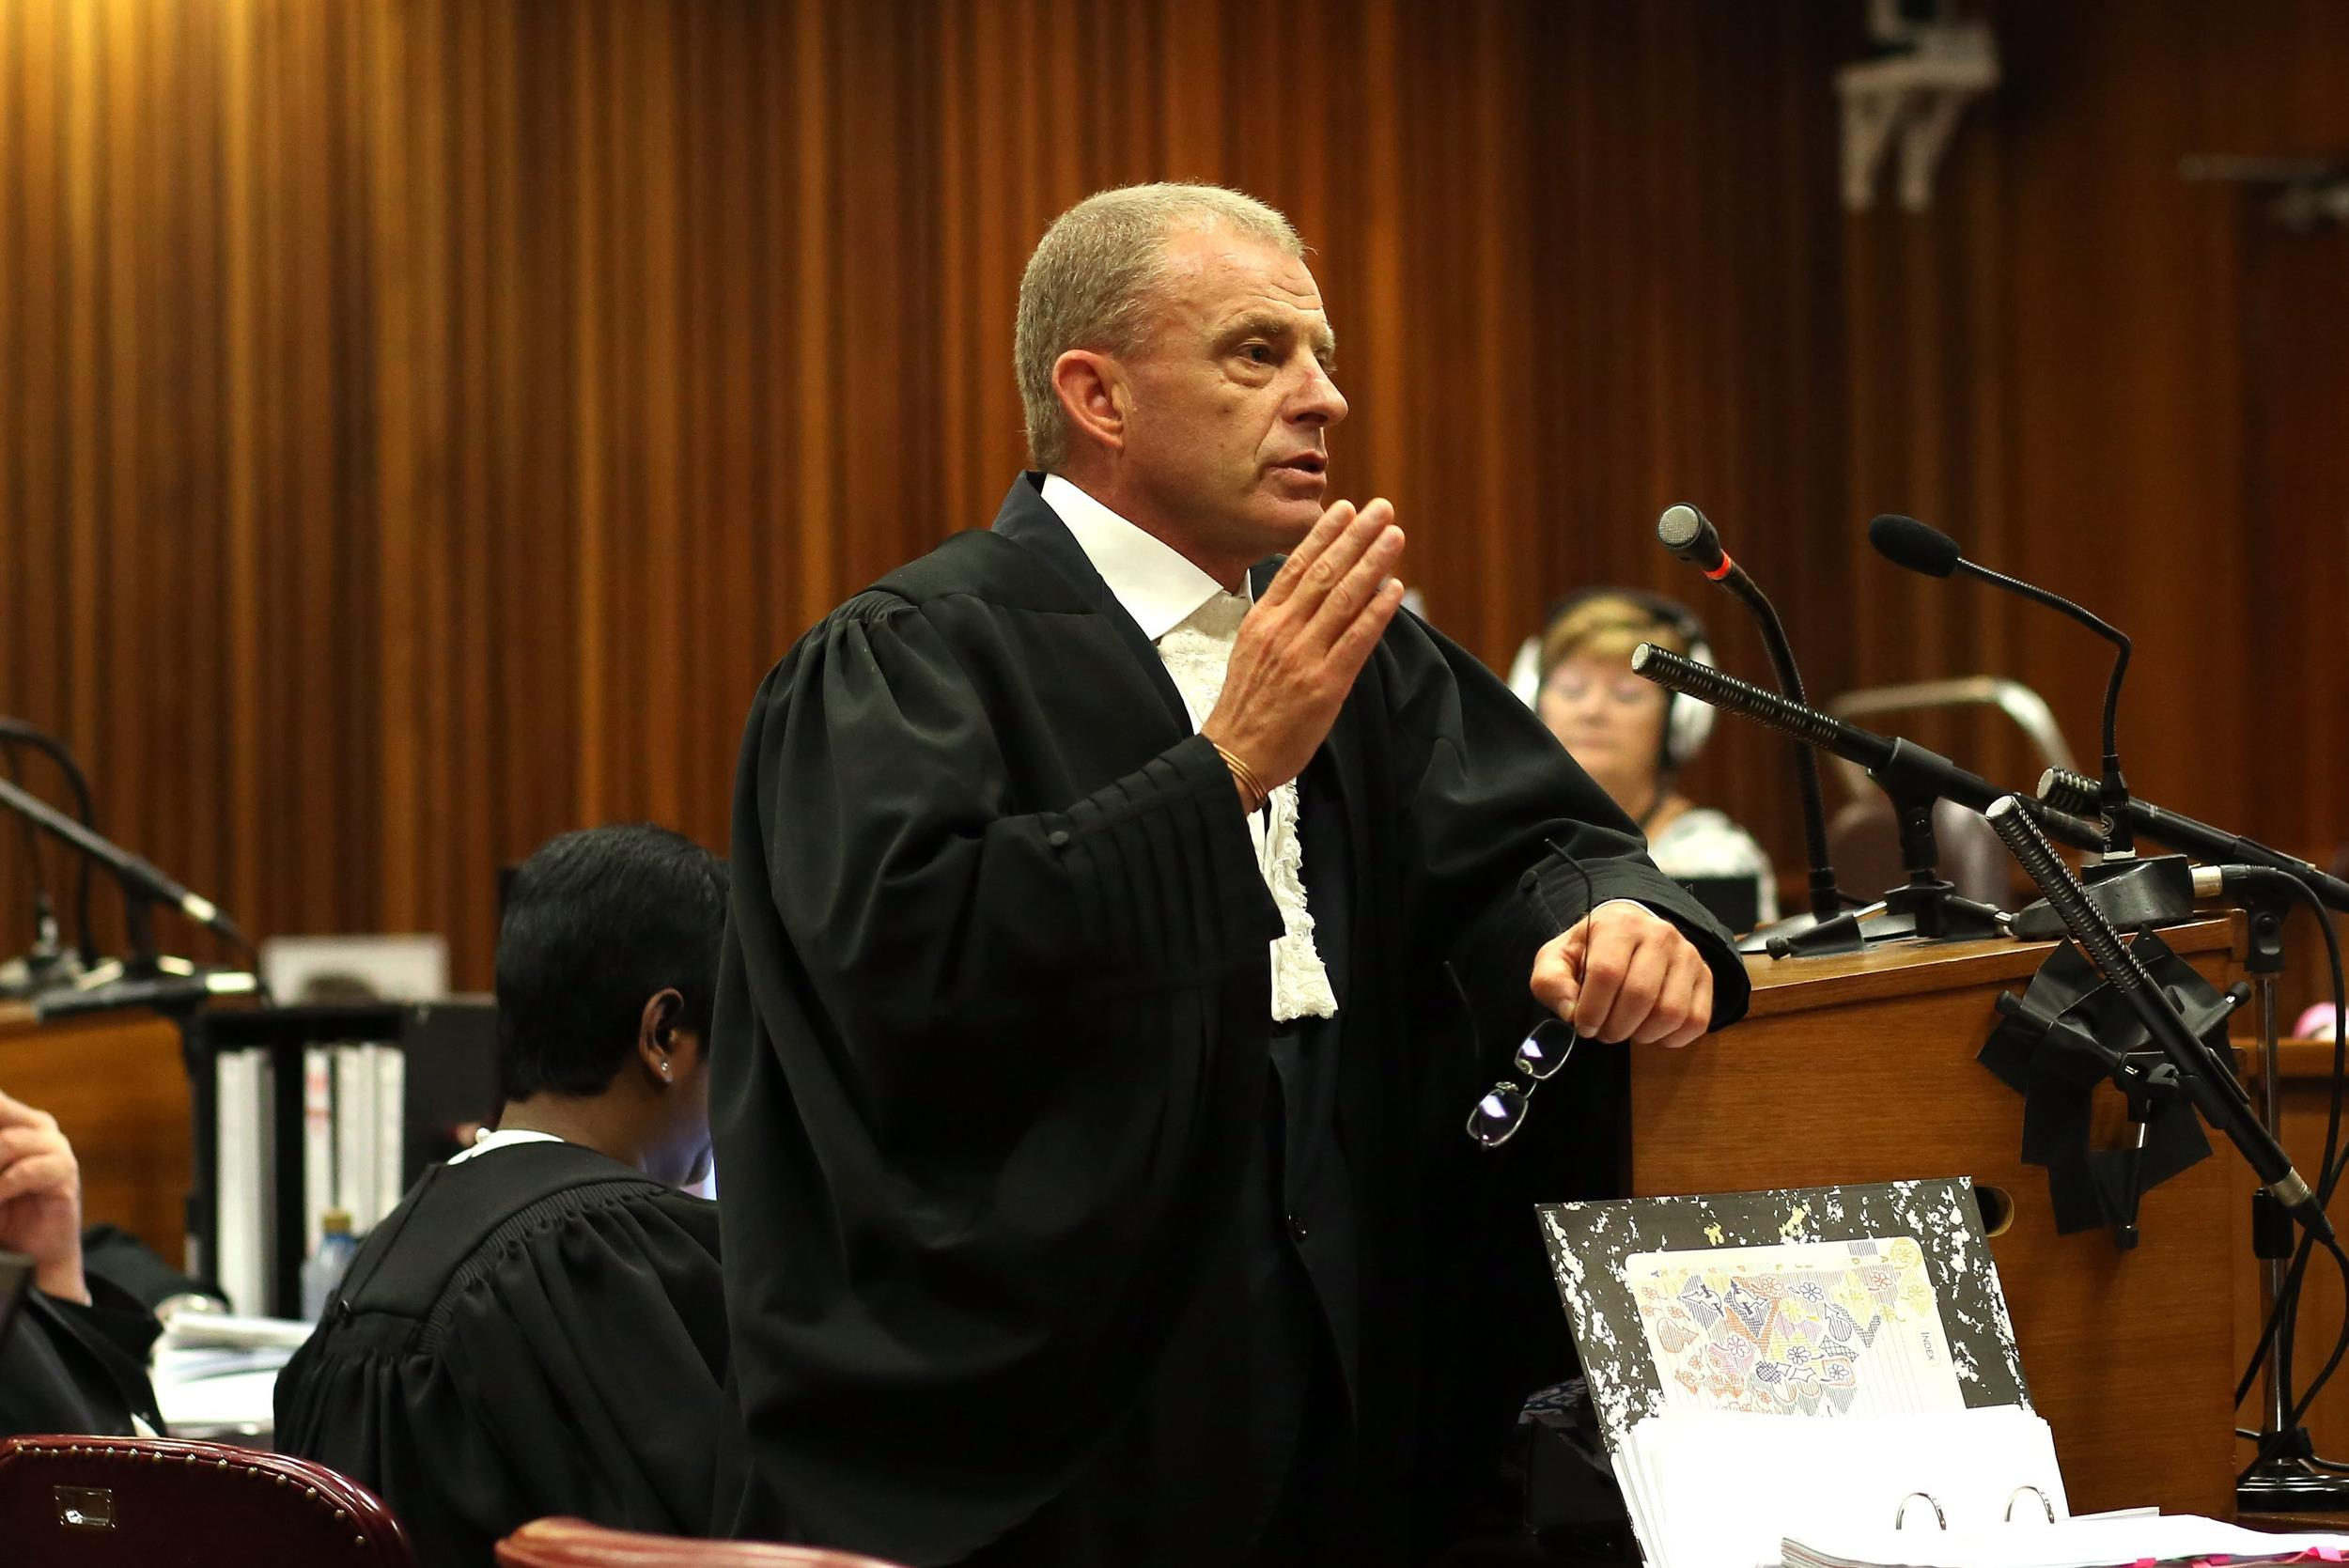 Image: State Prosecutor Gerrie Nel speaks during the Oscar Pistorius trial